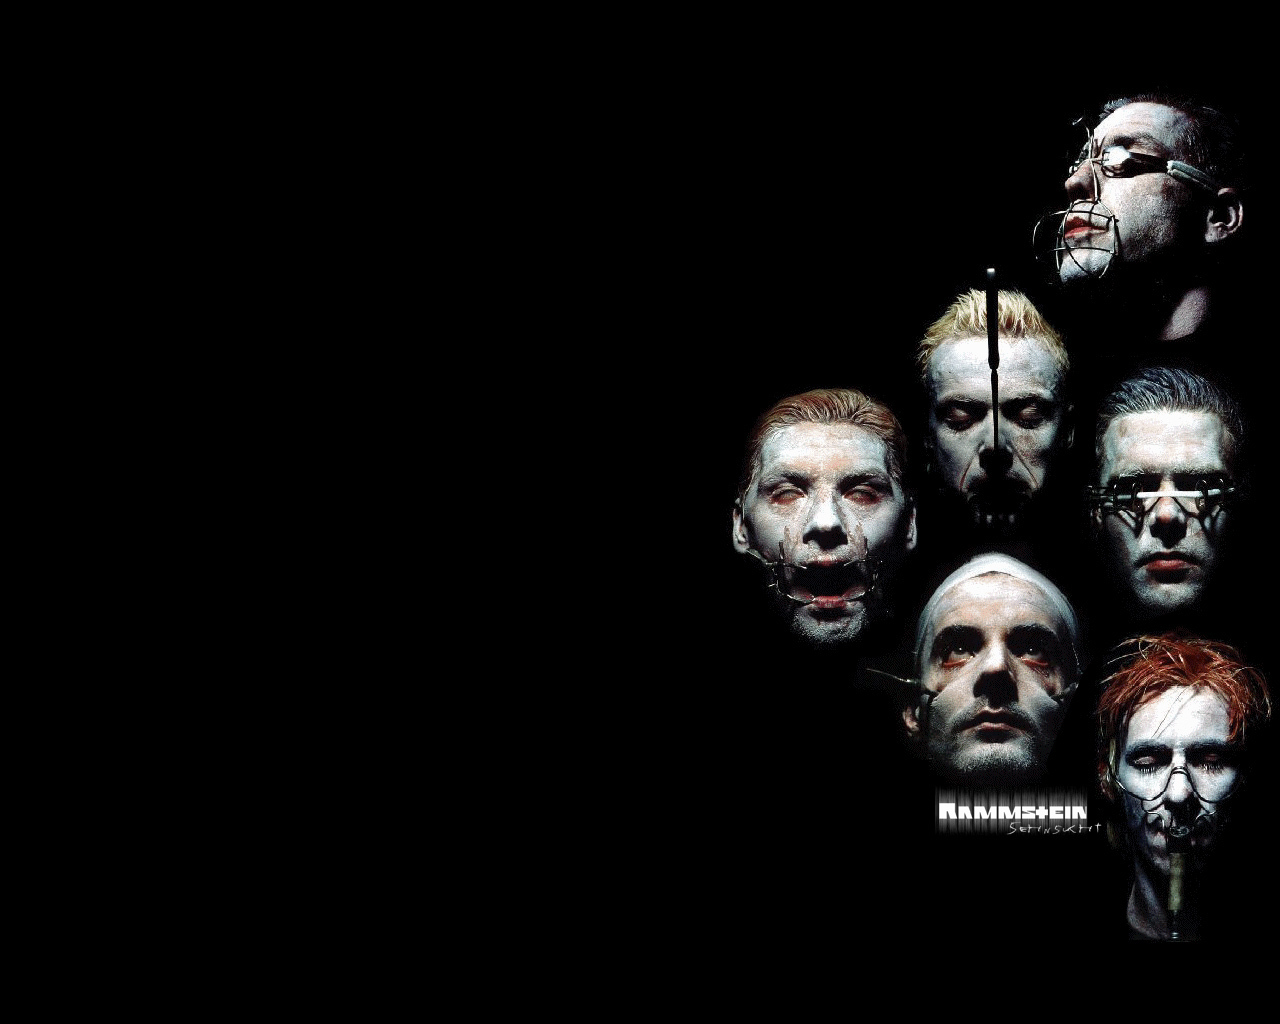 Rammstein wallpaper widescreen